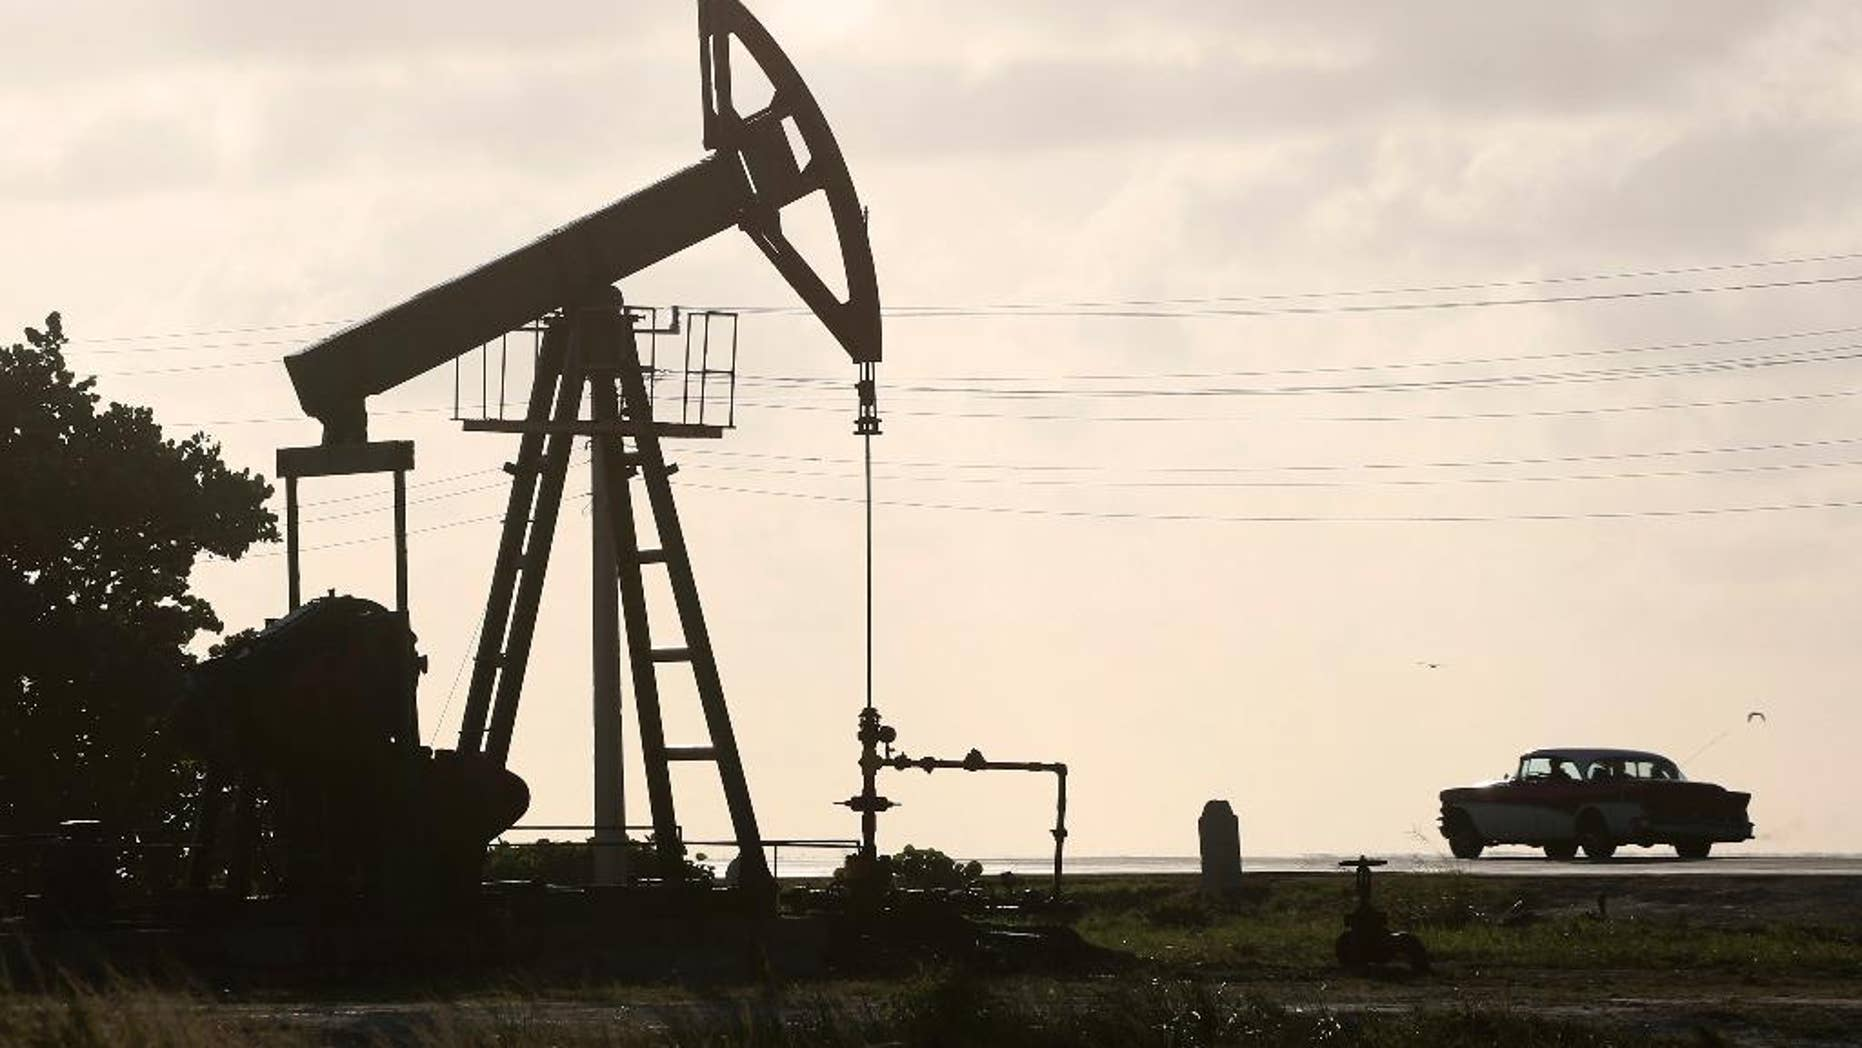 FILE - In this July 11, 2014 file photo, an oil well pump operates in Boca de Jaruco, Cuba. Officials are warning of tough times with authorities ordering energy-saving measures and some state entities reducing hours of operation.  (AP Photo/Desmond Boylan, File)